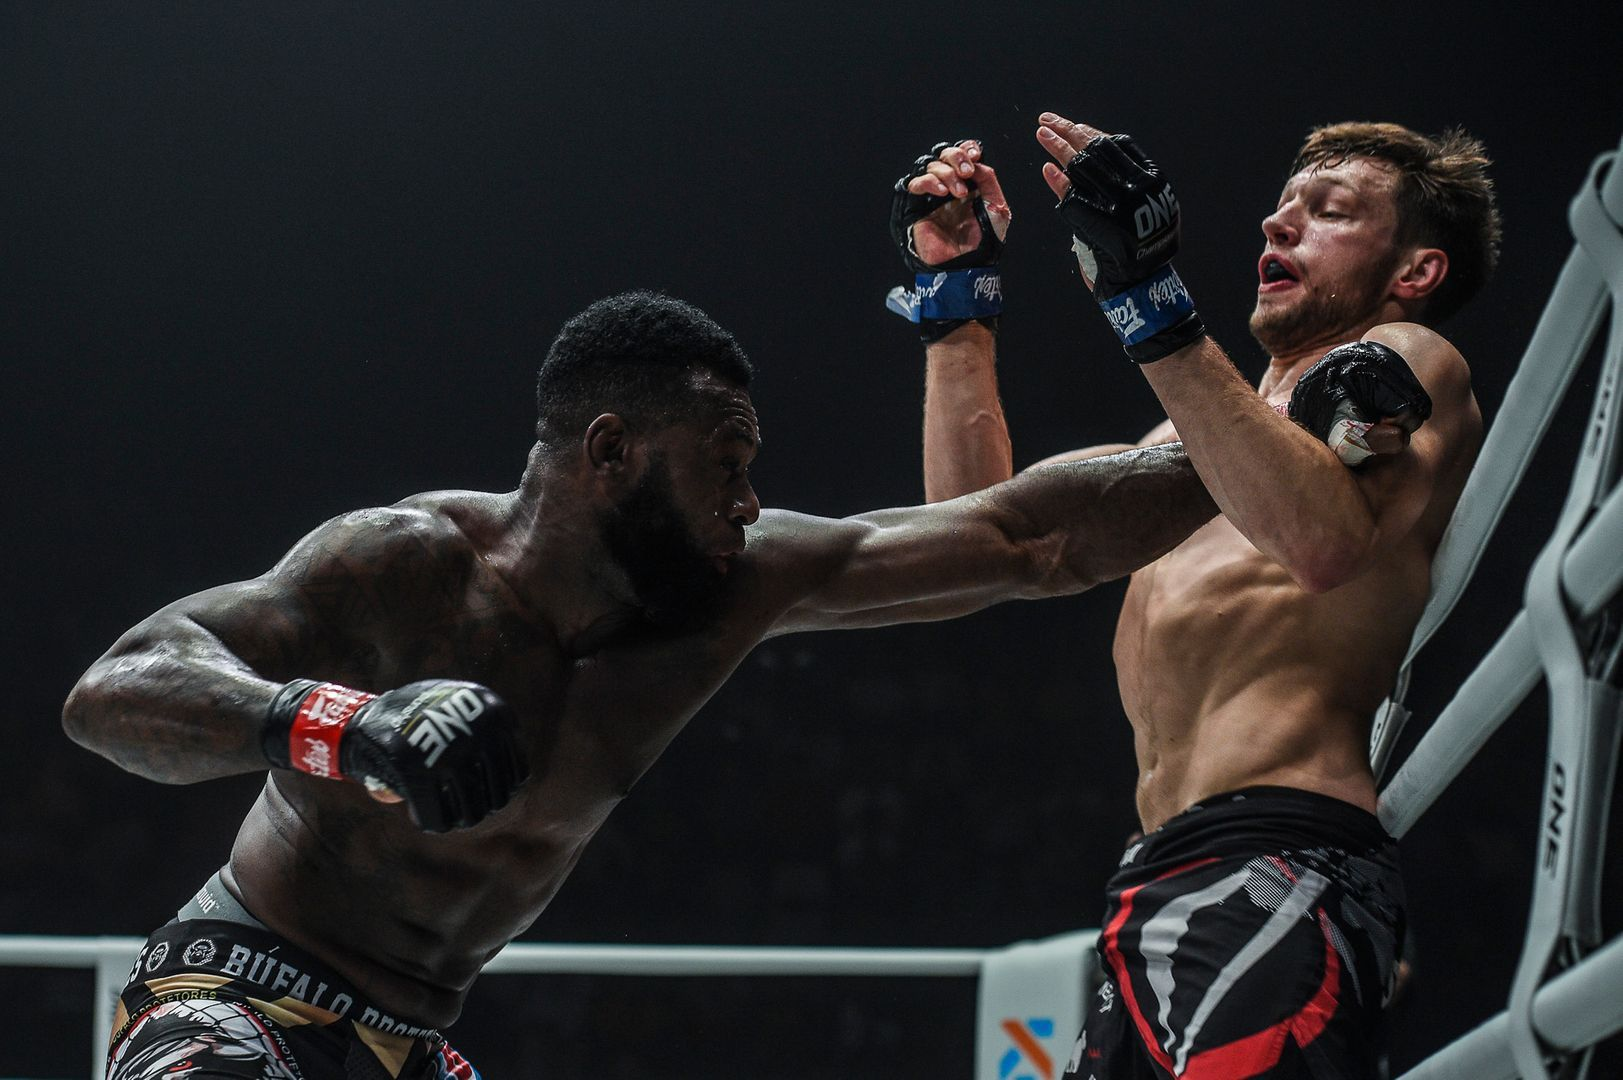 Holland's Reinier De Ridder squares off with Brazil's Leandro Ataides in February 2020